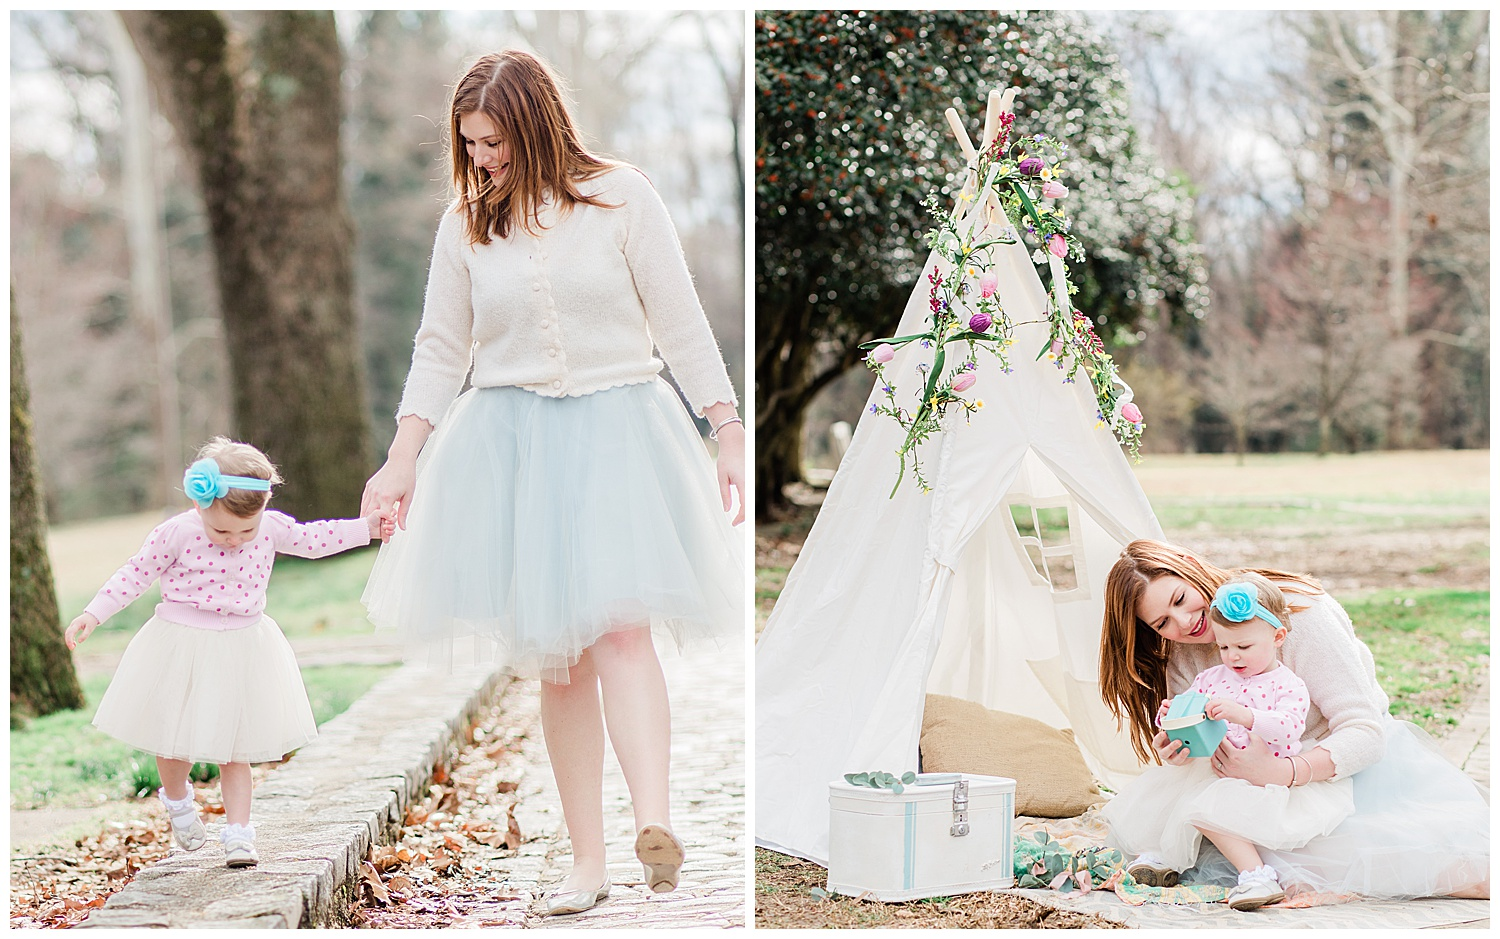 Richmond Family Photography - Teepee Bohemian Styled Shoot